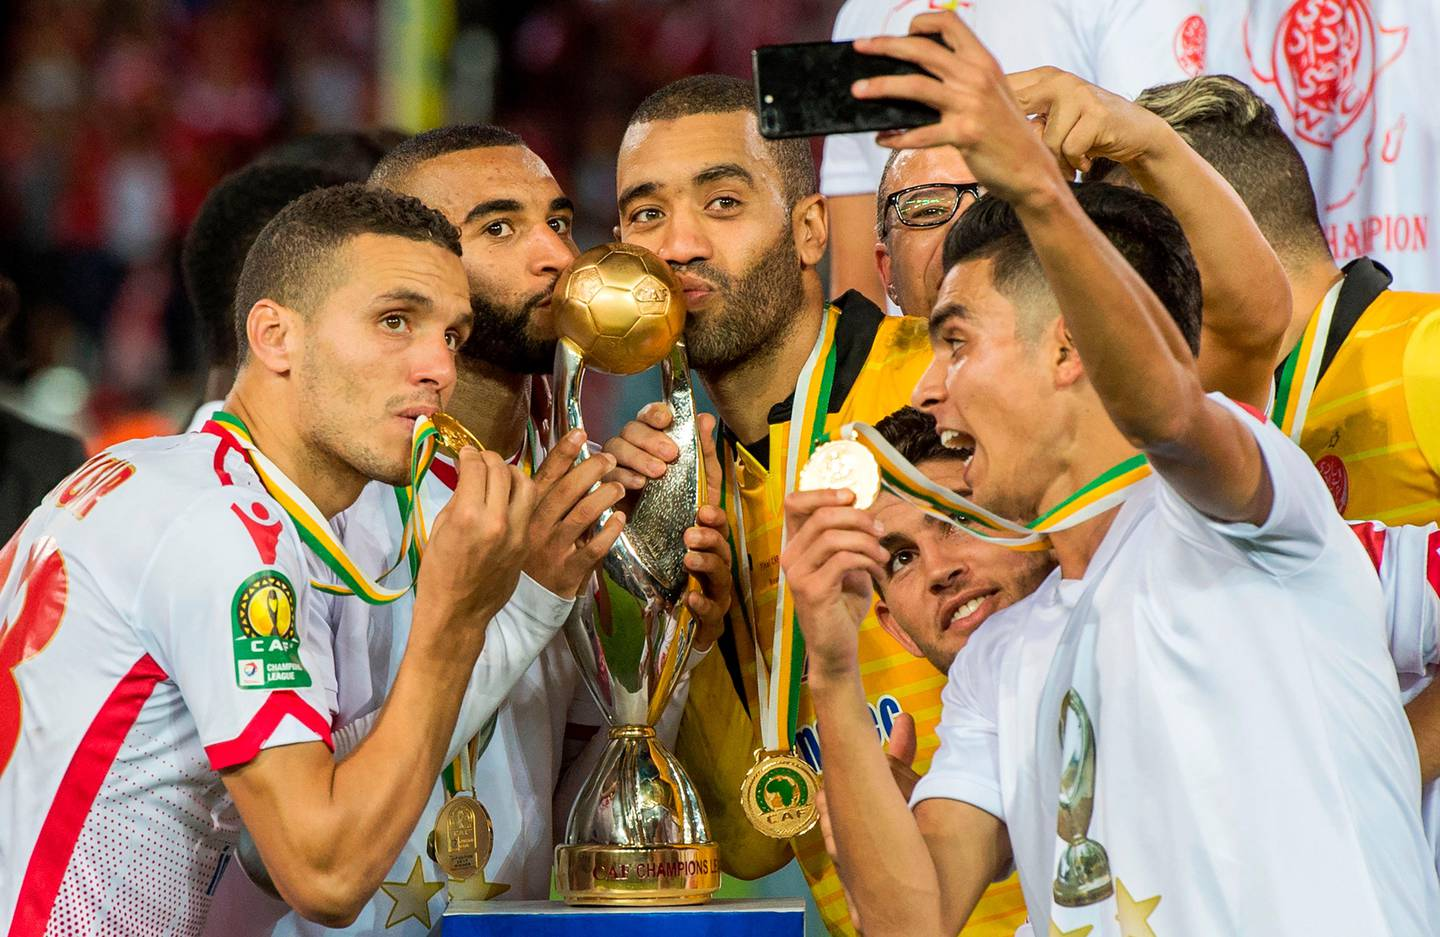 Wydad Casablanca's players celebrate with their trophy after winning the CAF Champions League final football match between Egypt's Al-Ahly and Morocco's Wydad Casablanca on November 4, 2017, at Mohamed V Stadium in Casablanca.  / AFP PHOTO / FADEL SENNA